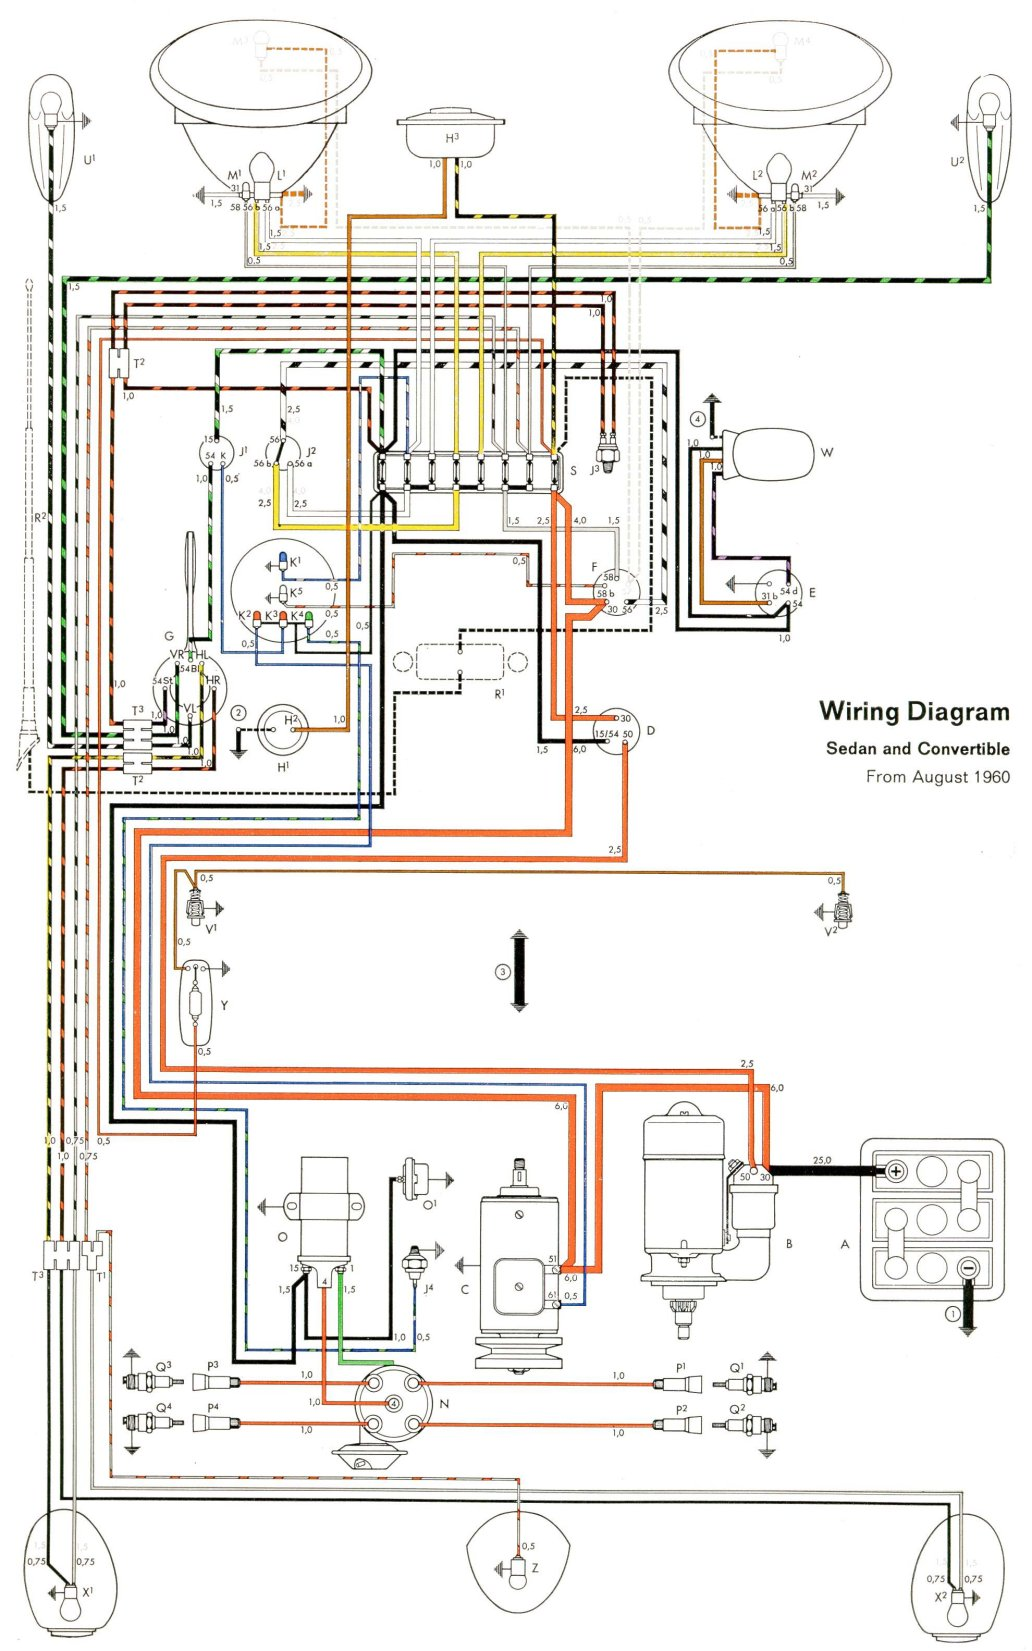 1967 Vw Wiring Diagram Schemes Shelby Thesamba Com Type 1 Diagrams Karmann Ghia